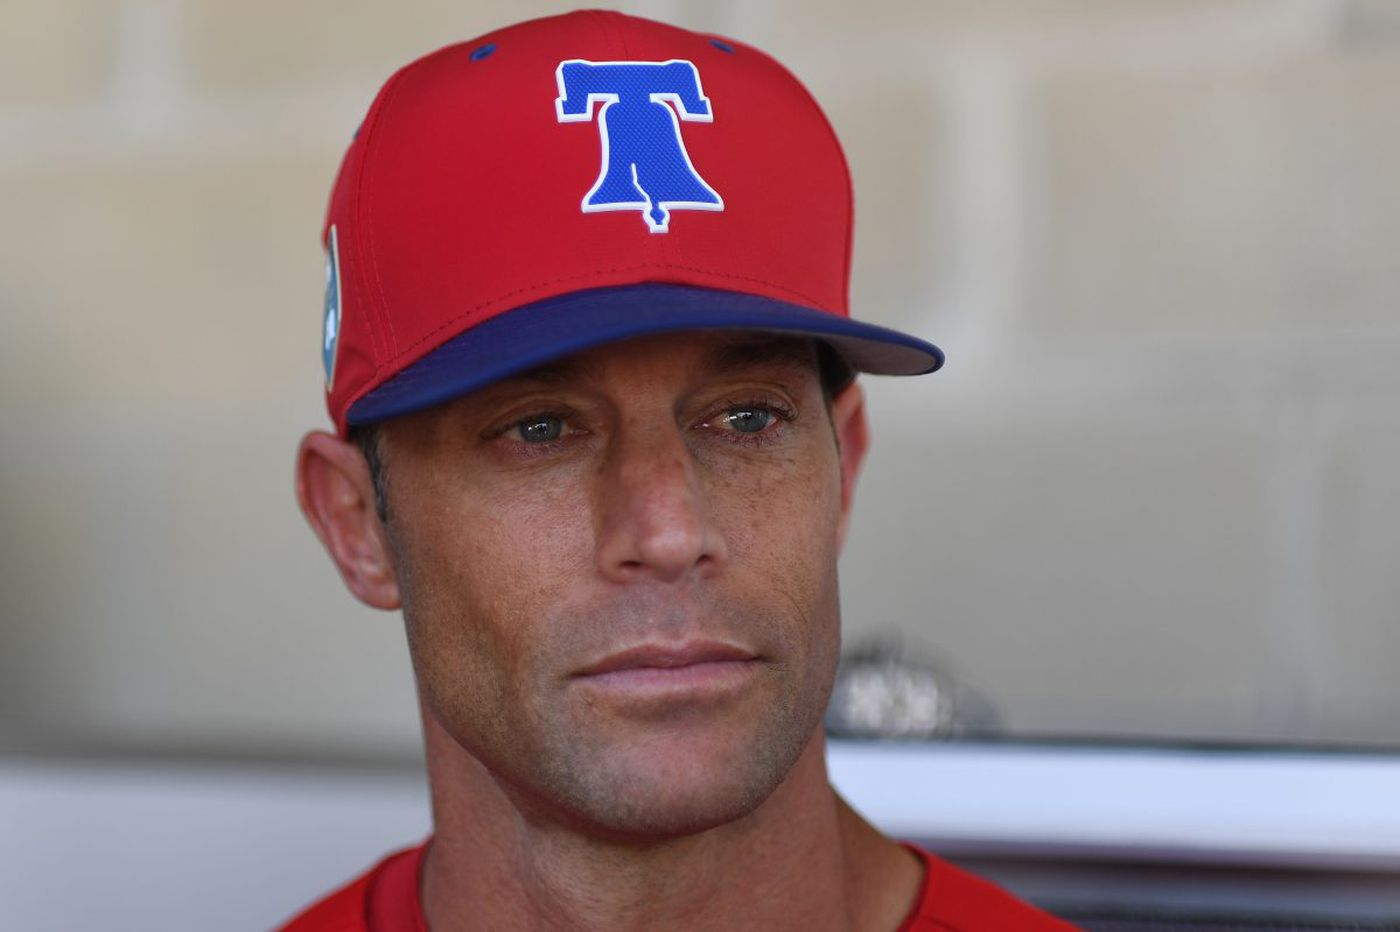 Gabe Kapler's message: Phillies are prepared to win